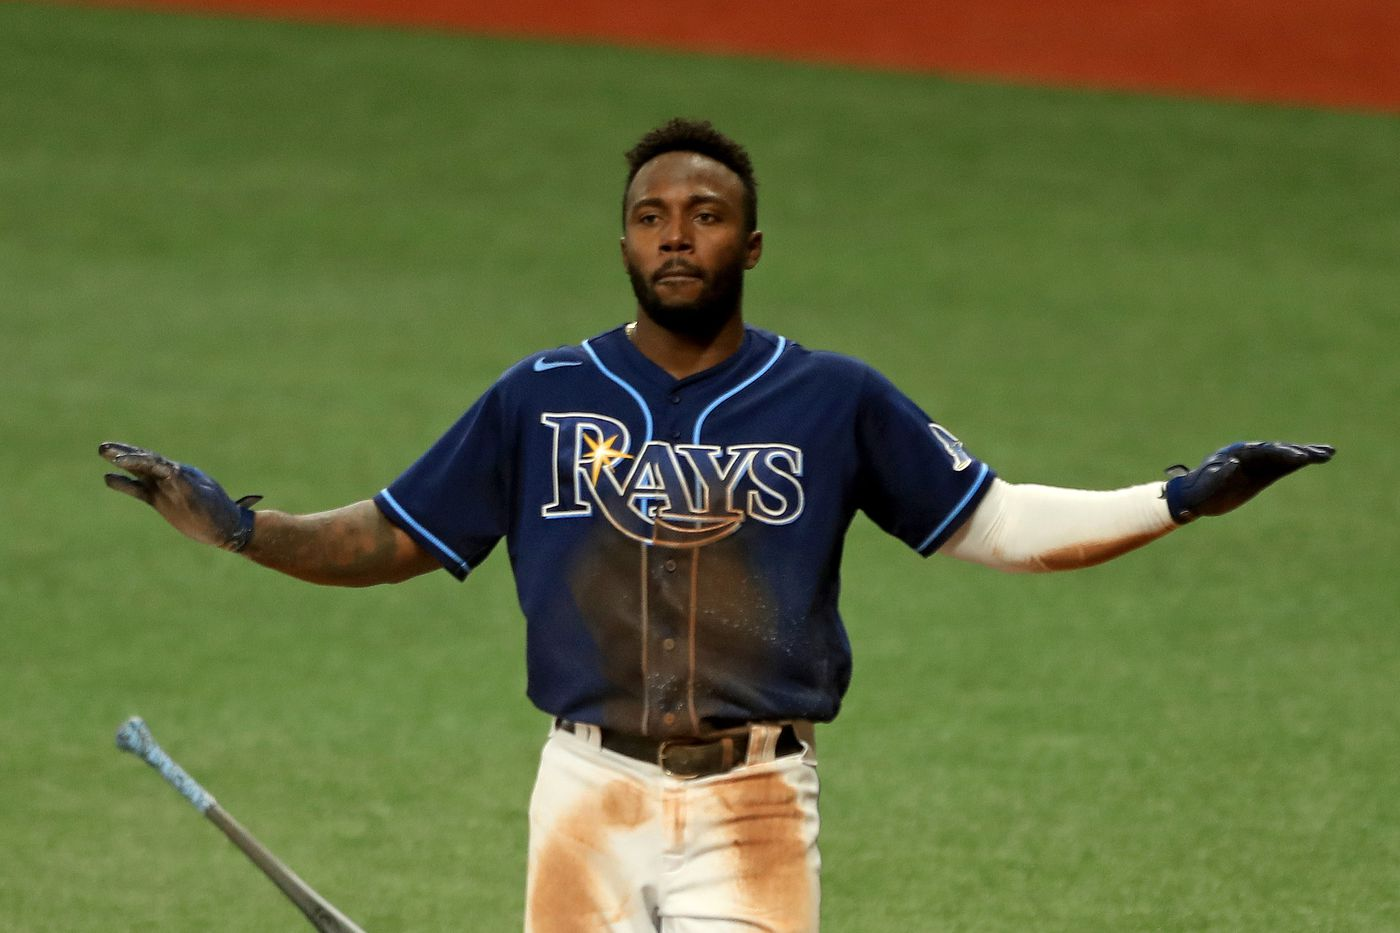 rays playoffs welcome to the randy arozarena show draysbay rays playoffs welcome to the randy